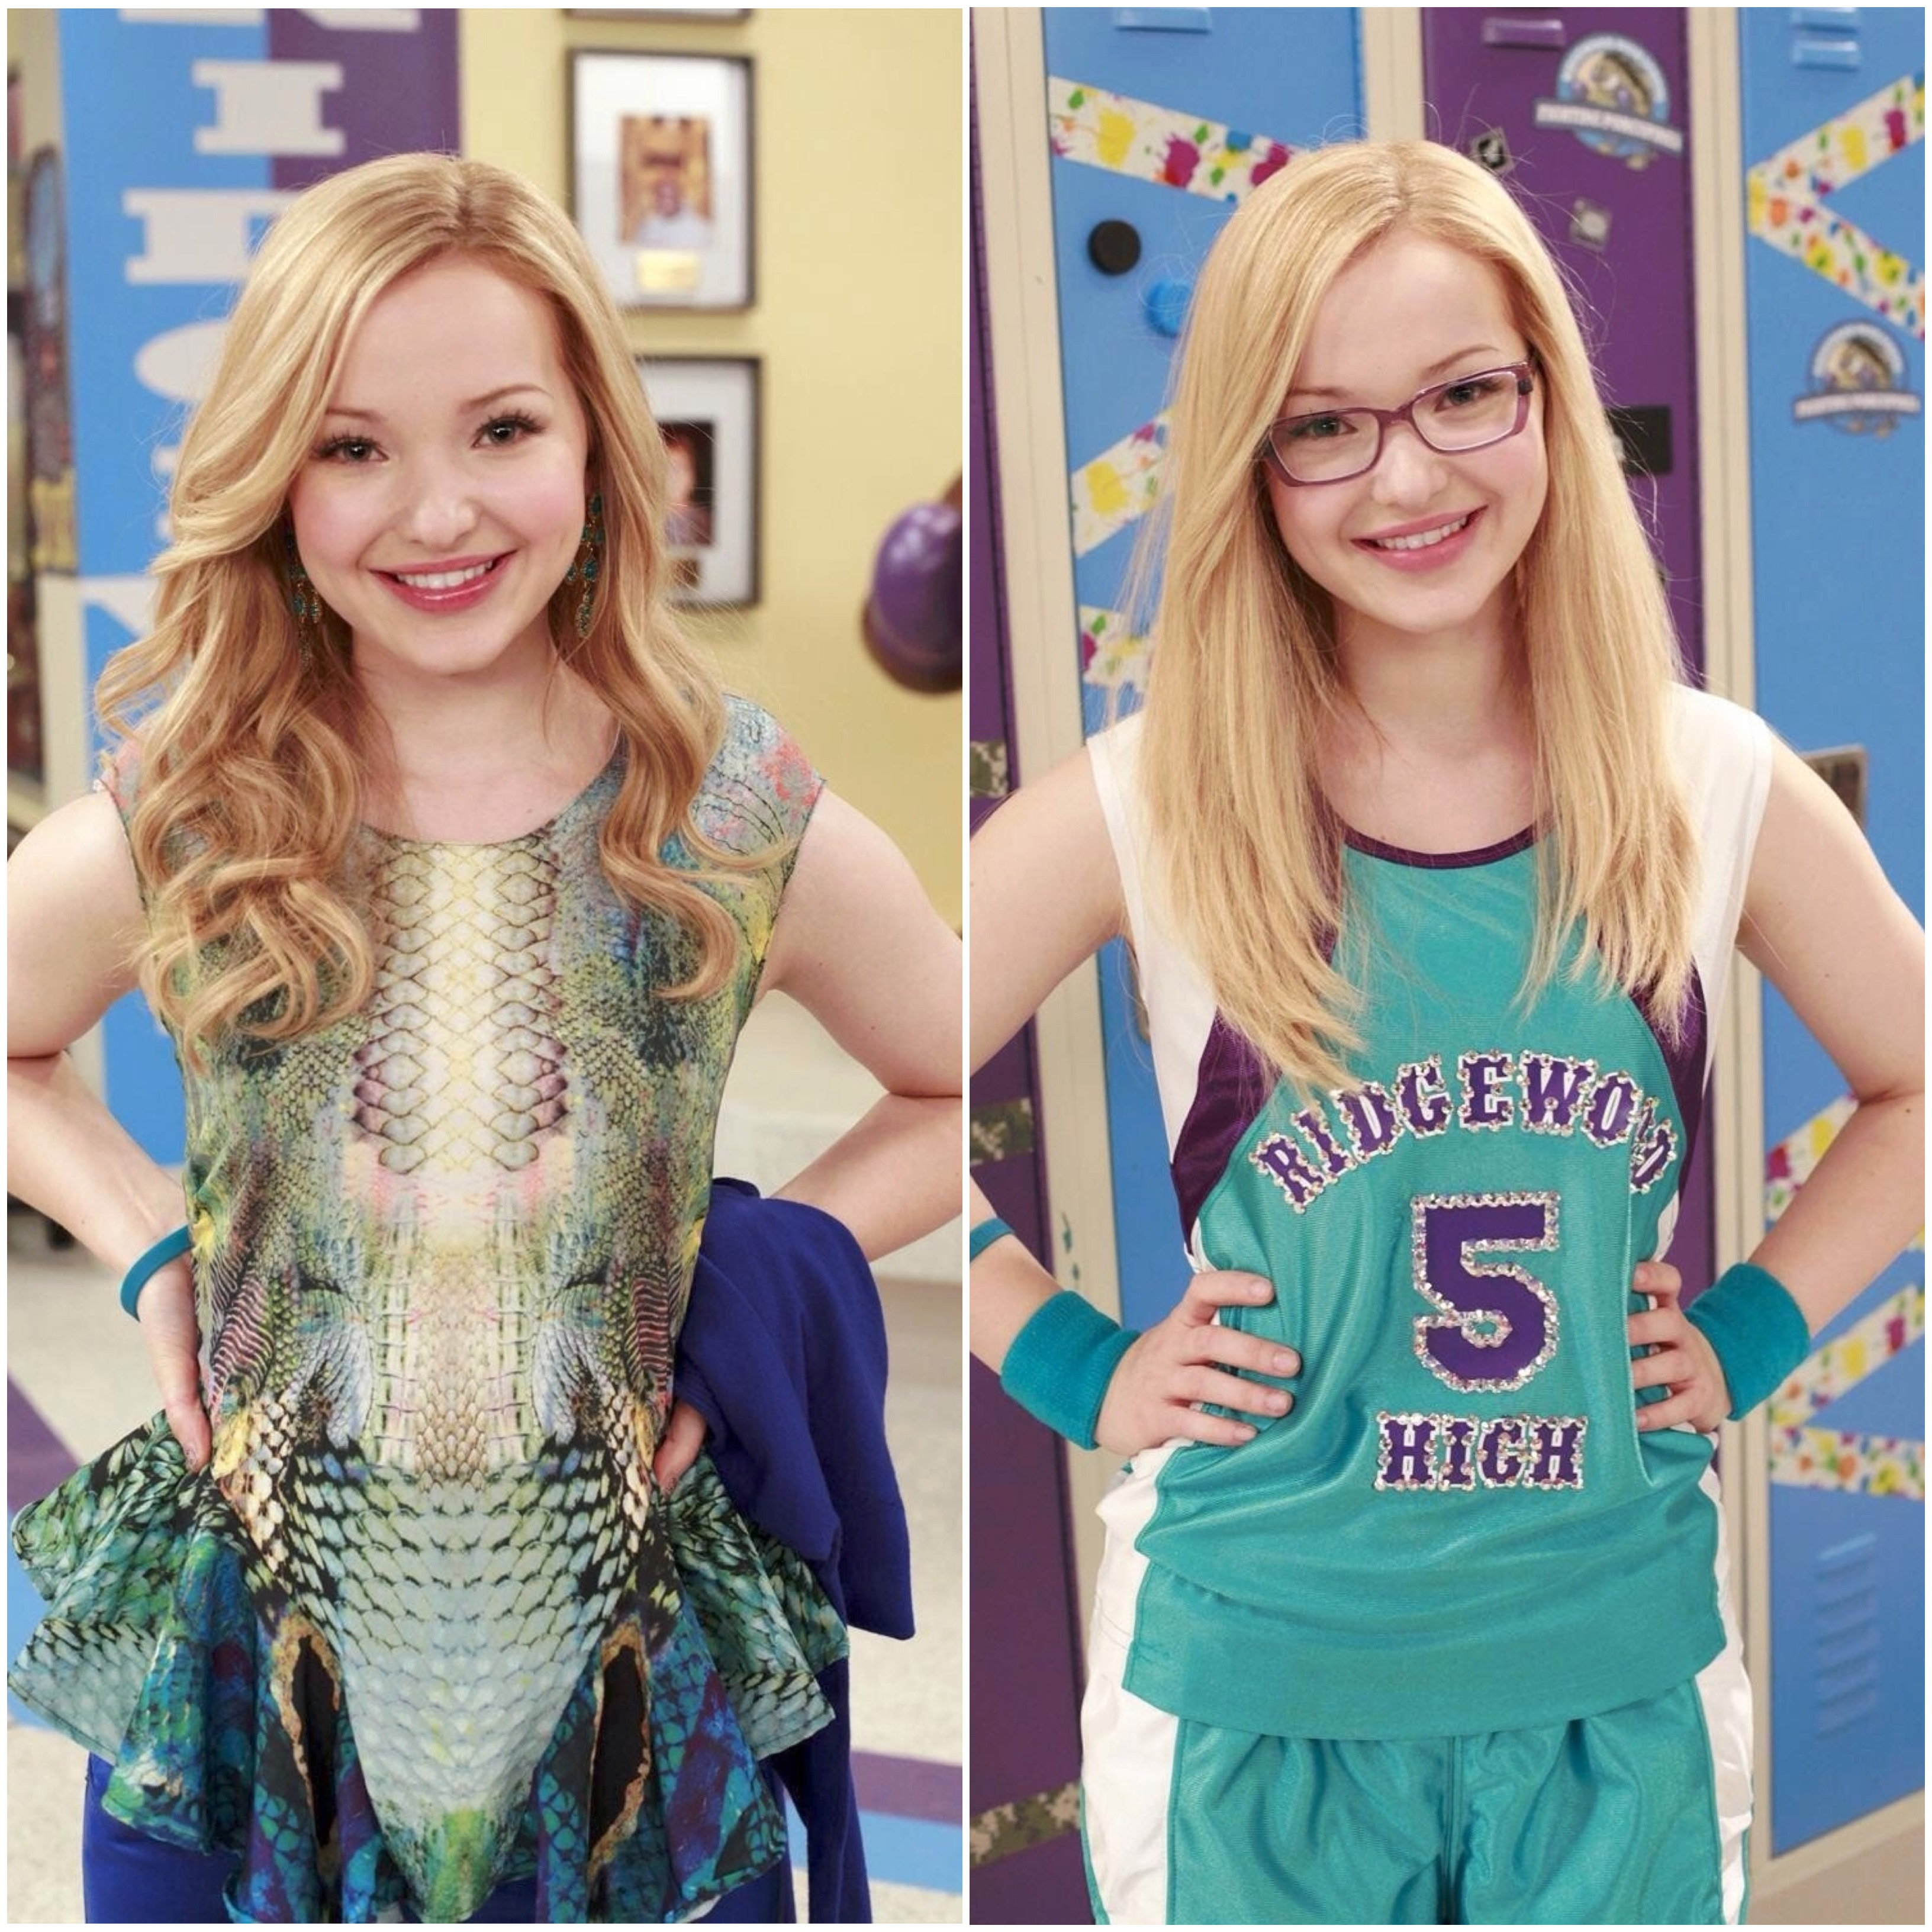 Dove Cameron – LIV AND MADDIE Promo Photoshoot 2013